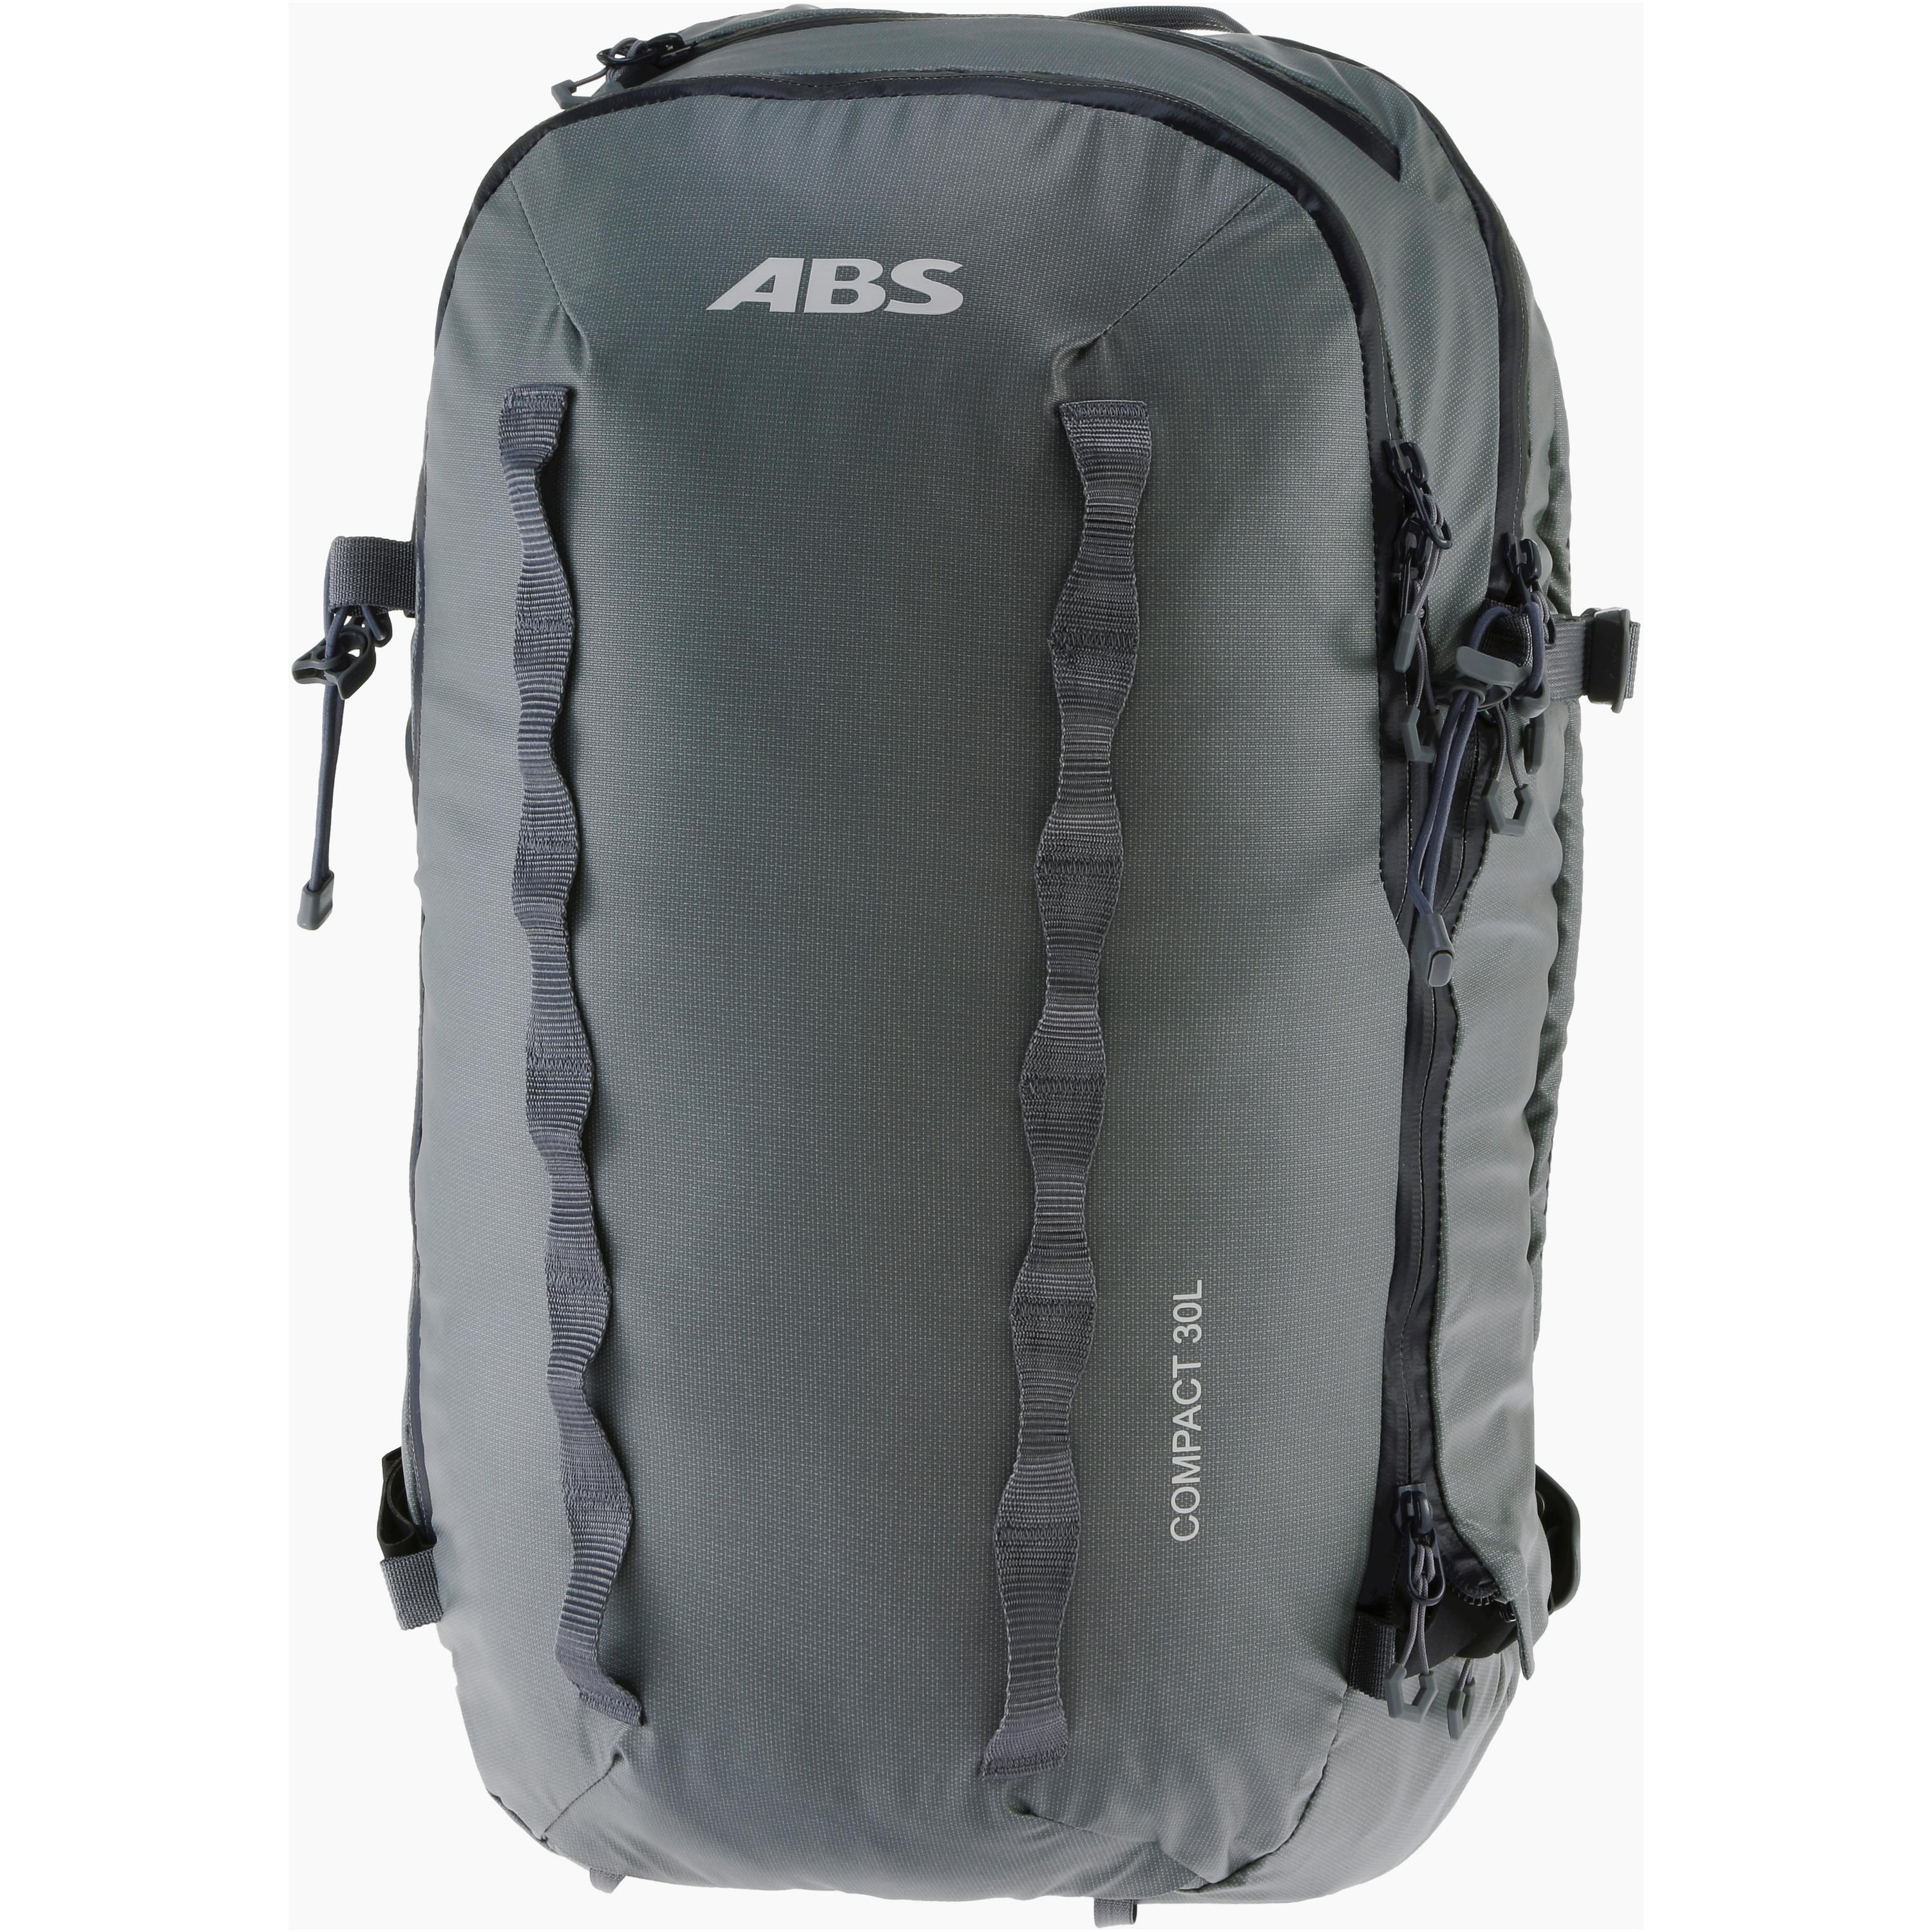 Image of ABS P.RIDE Compact 30 Zip-On